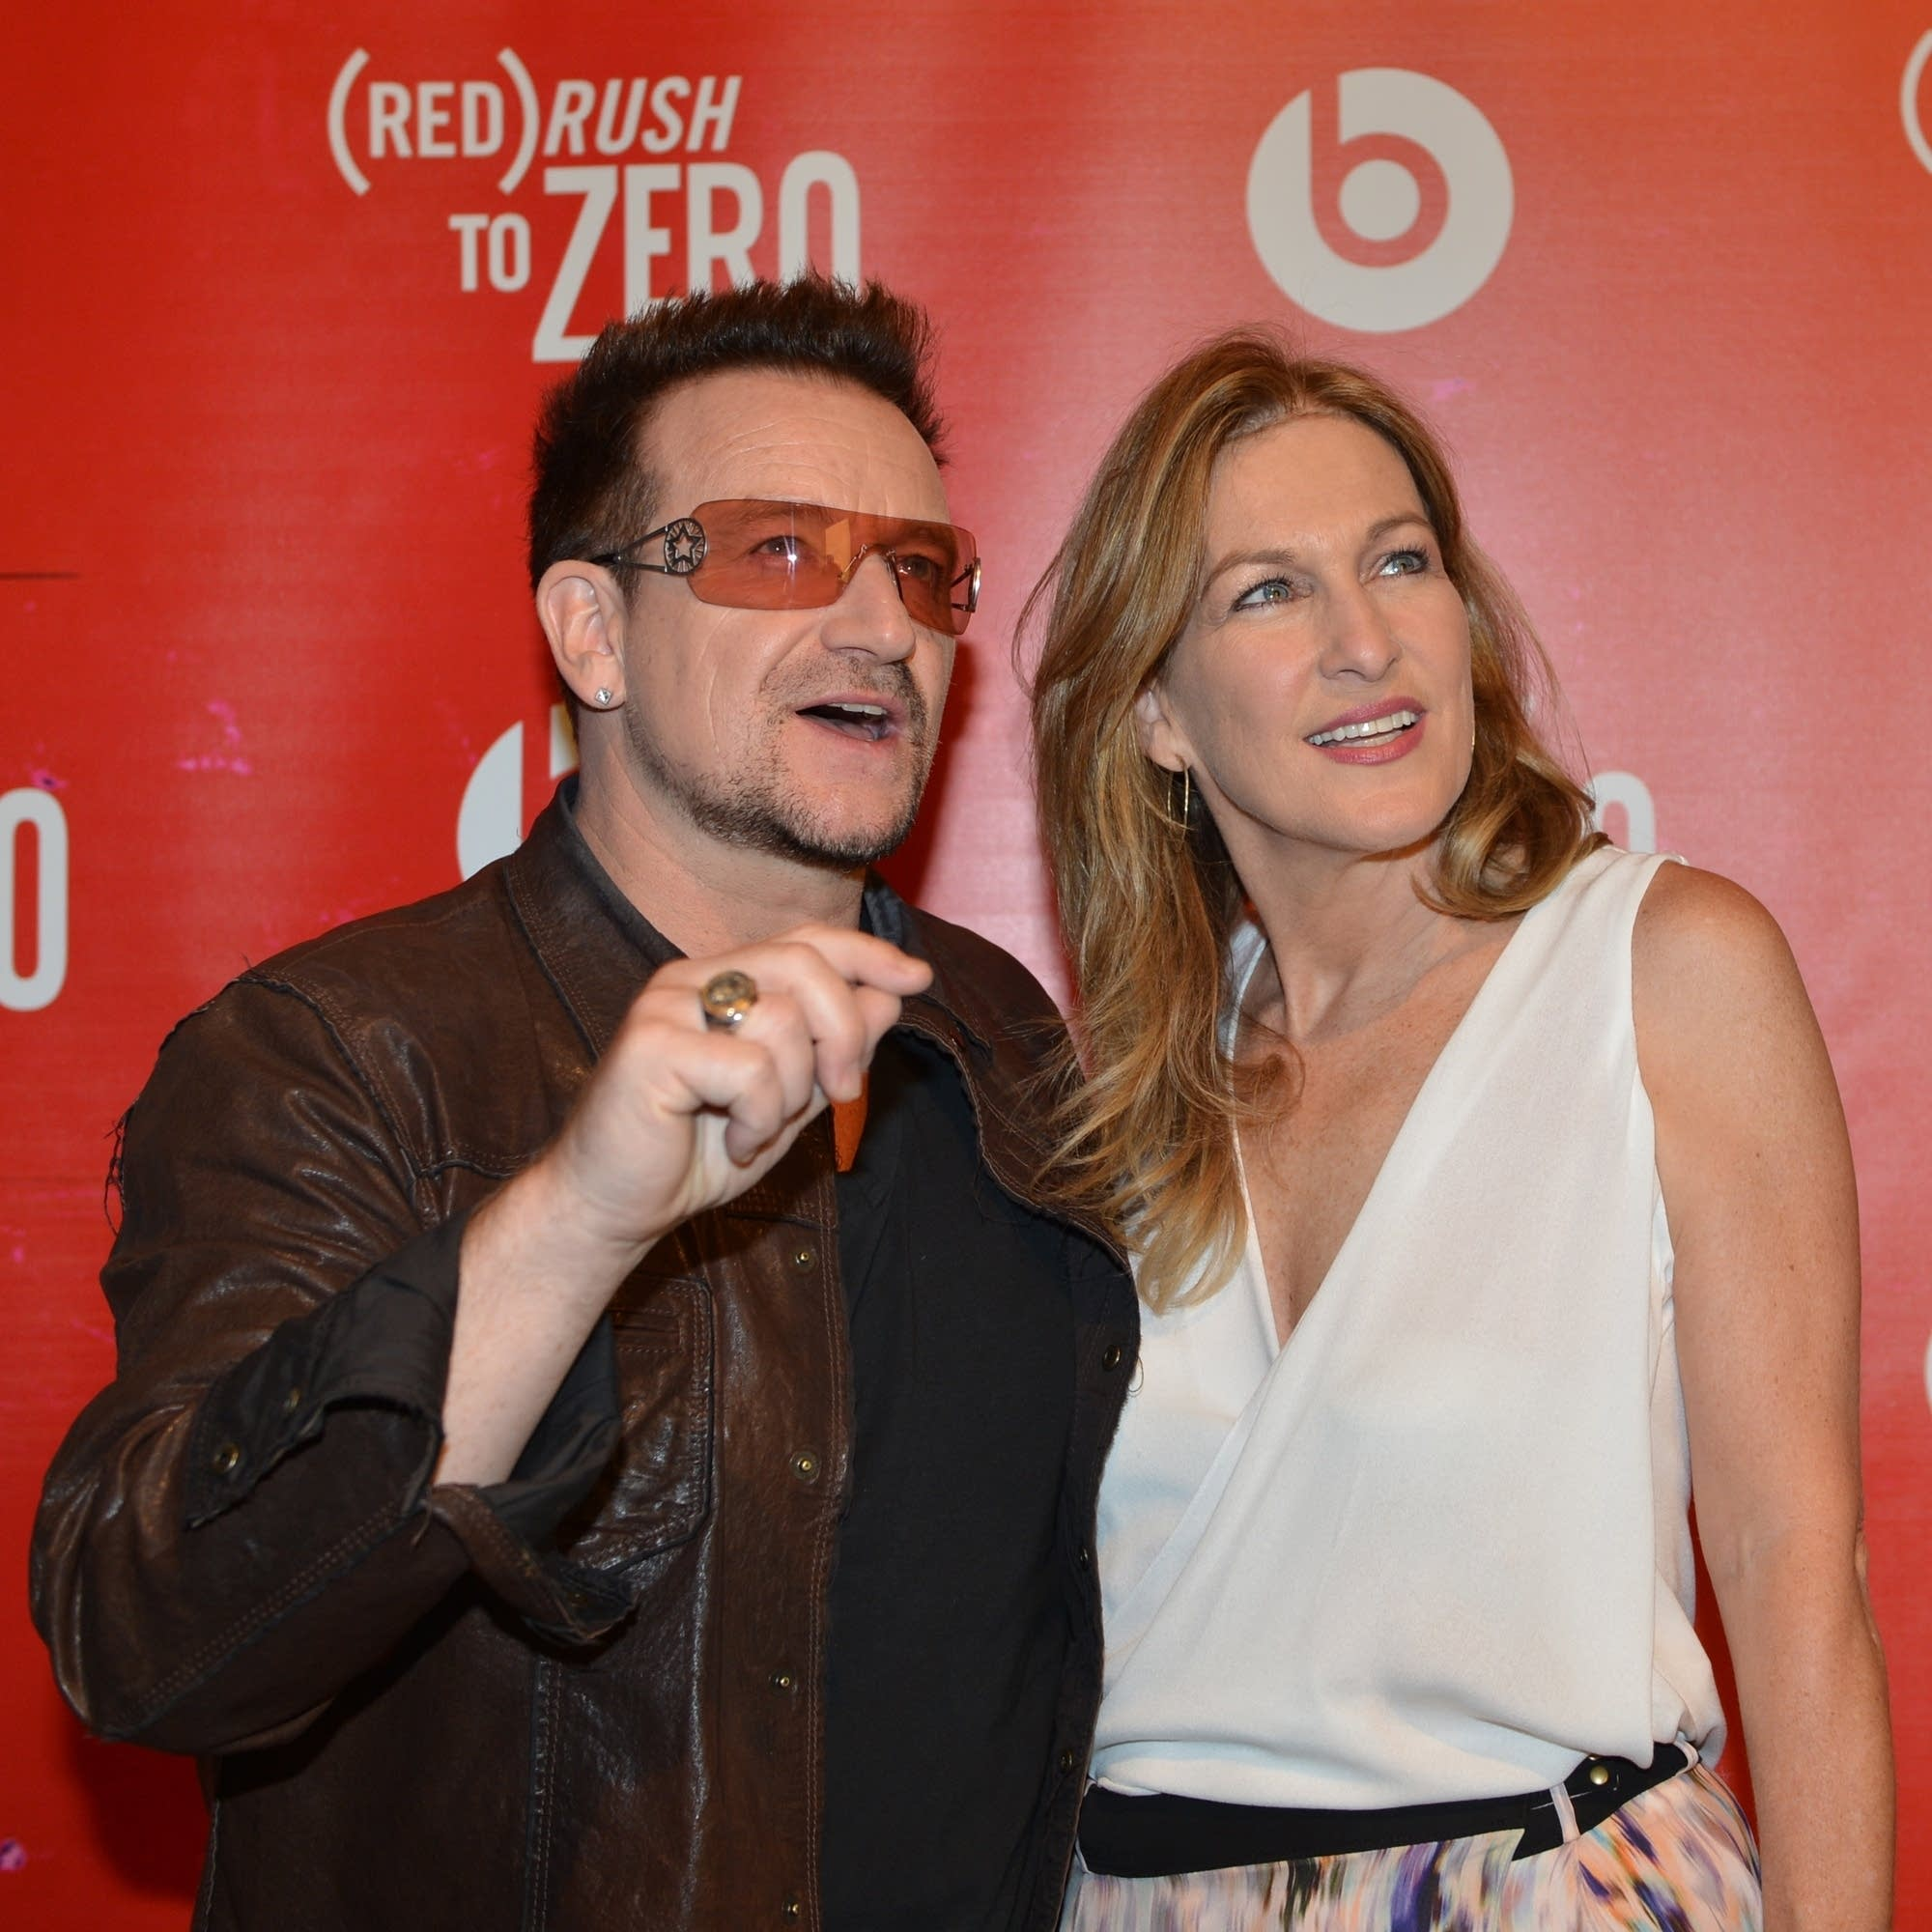 Deborah Dugan with Bono at a (RED) event in 2012.